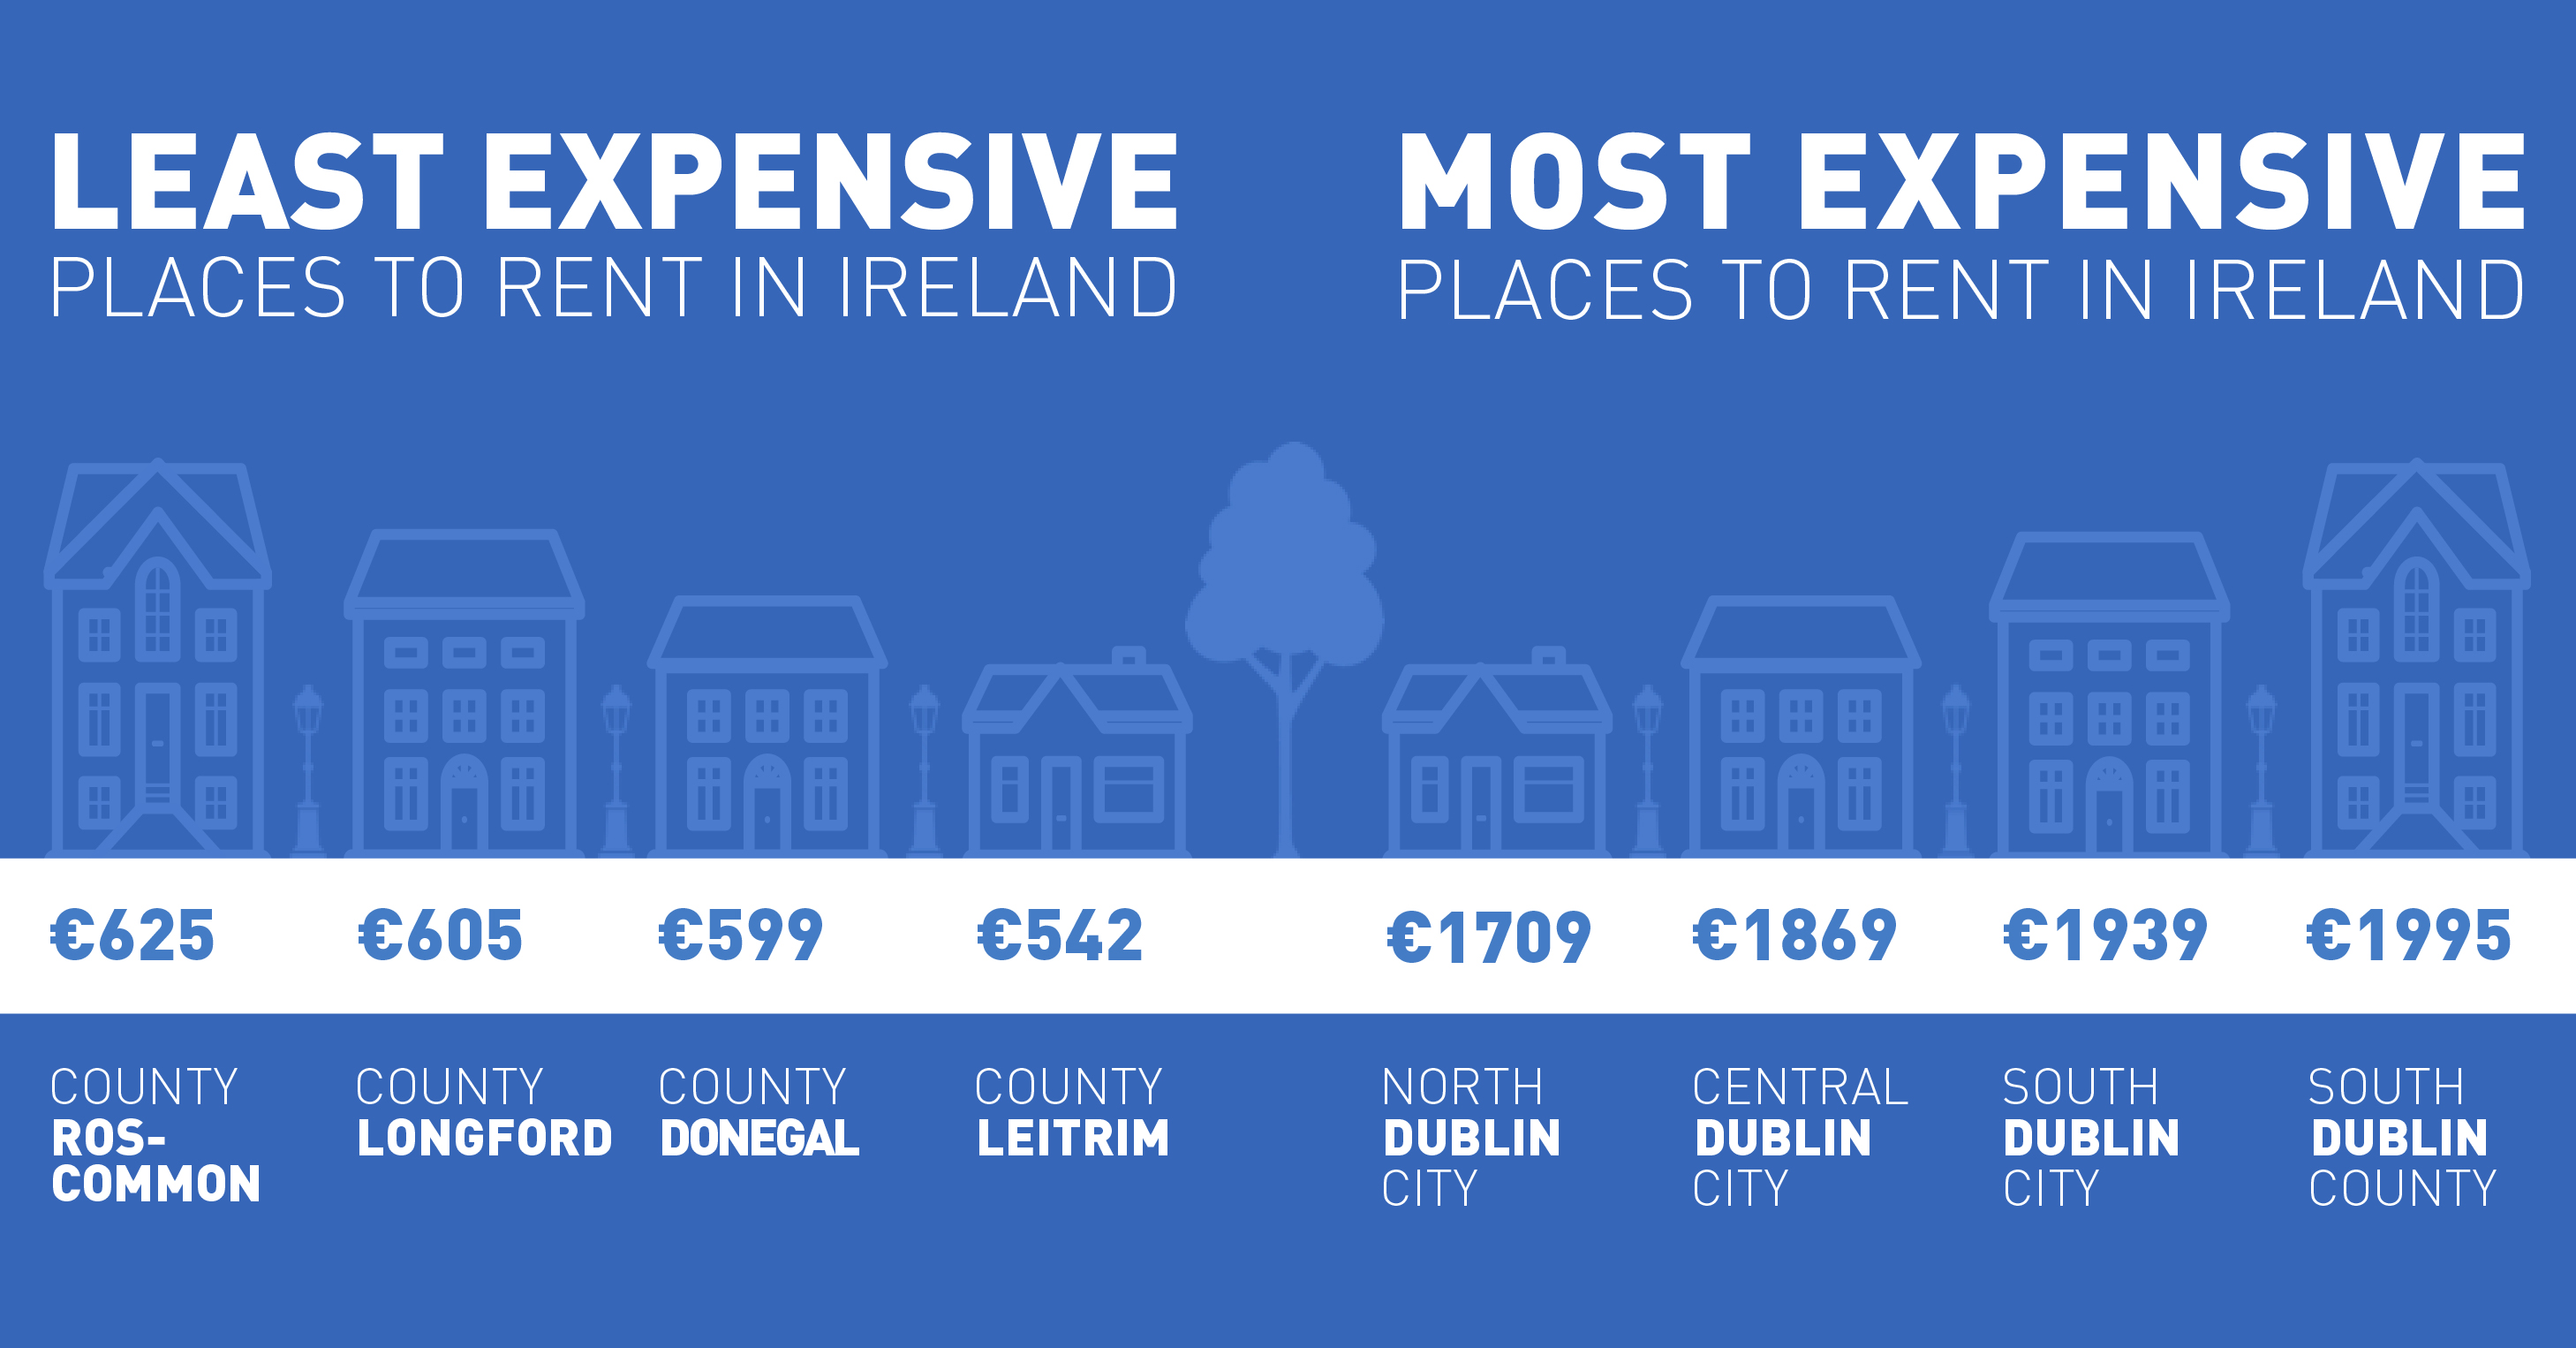 Places to rent in Ireland